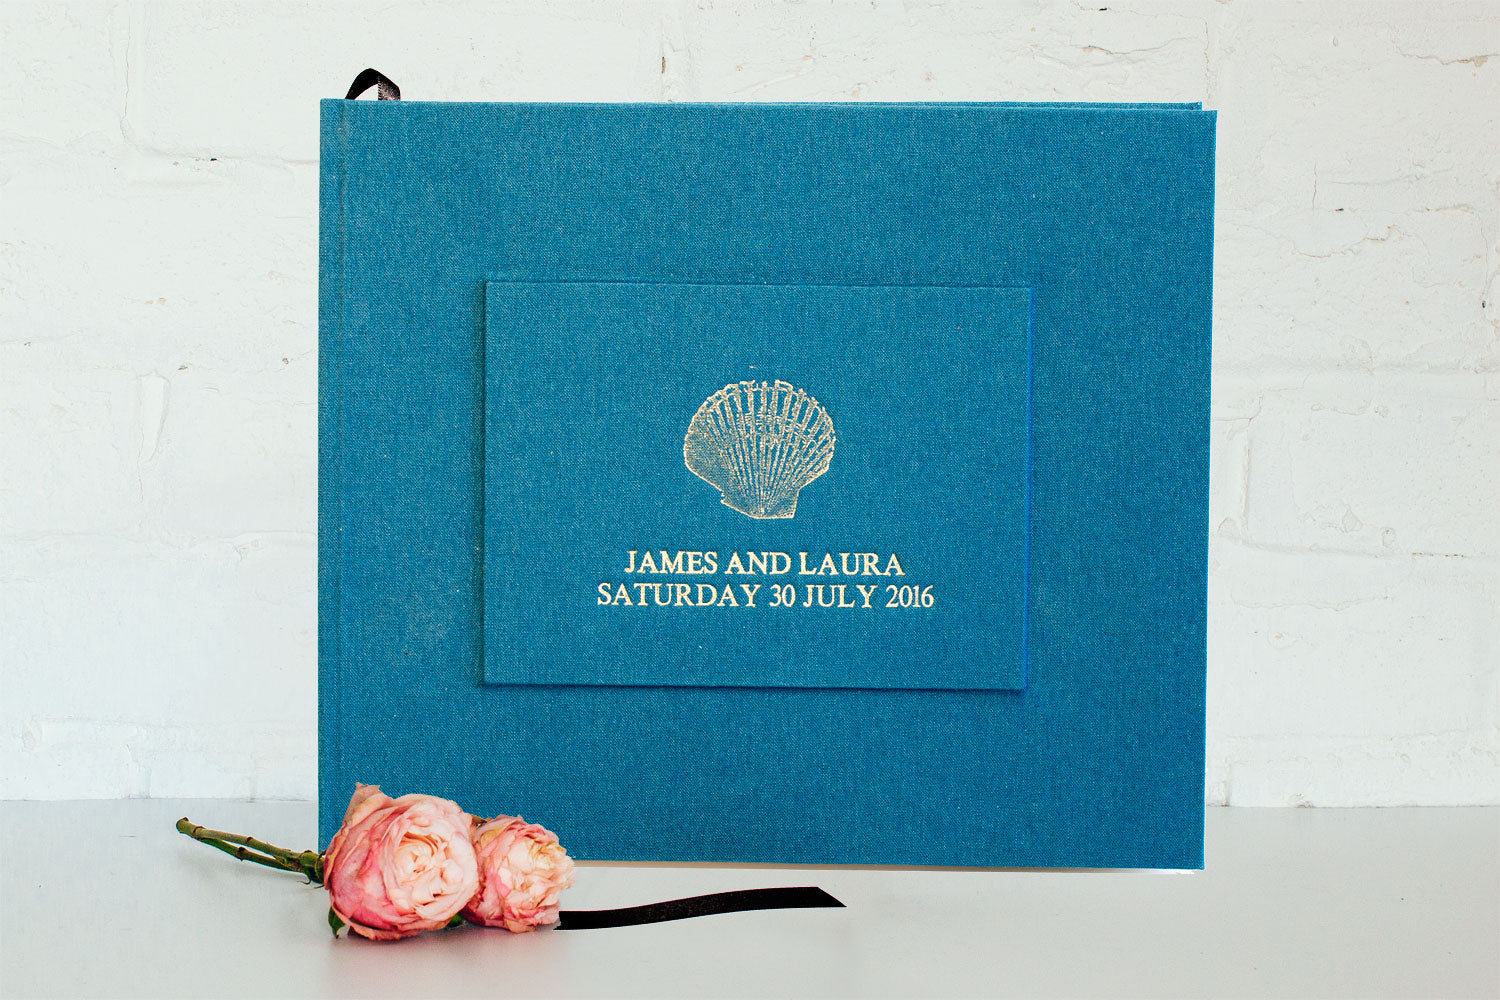 wedding guest book from Bookshell bindery, hand bound in blue book cloth with gold foil embossing, shell cover picture